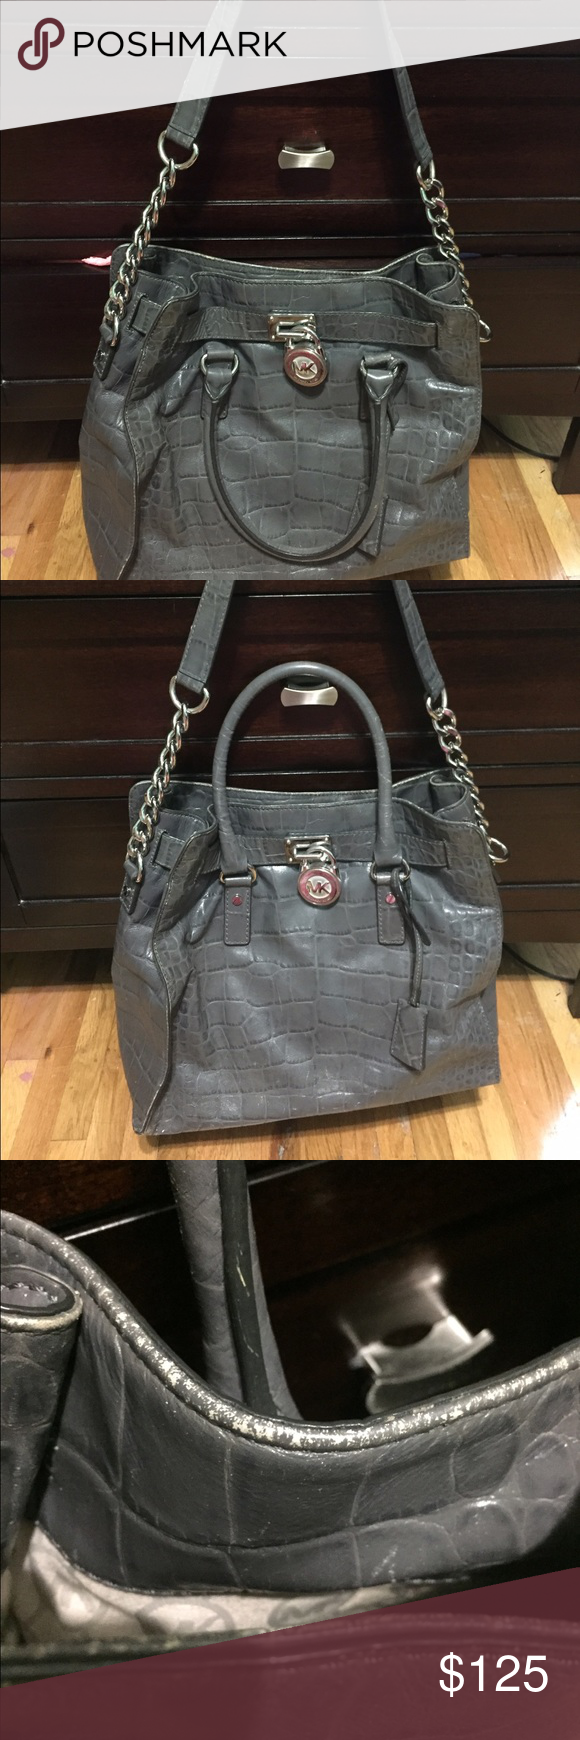 Michael Kors Grey Worn- good condition- normal wear and tear- some ink stains inside Michael Kors Bags Satchels